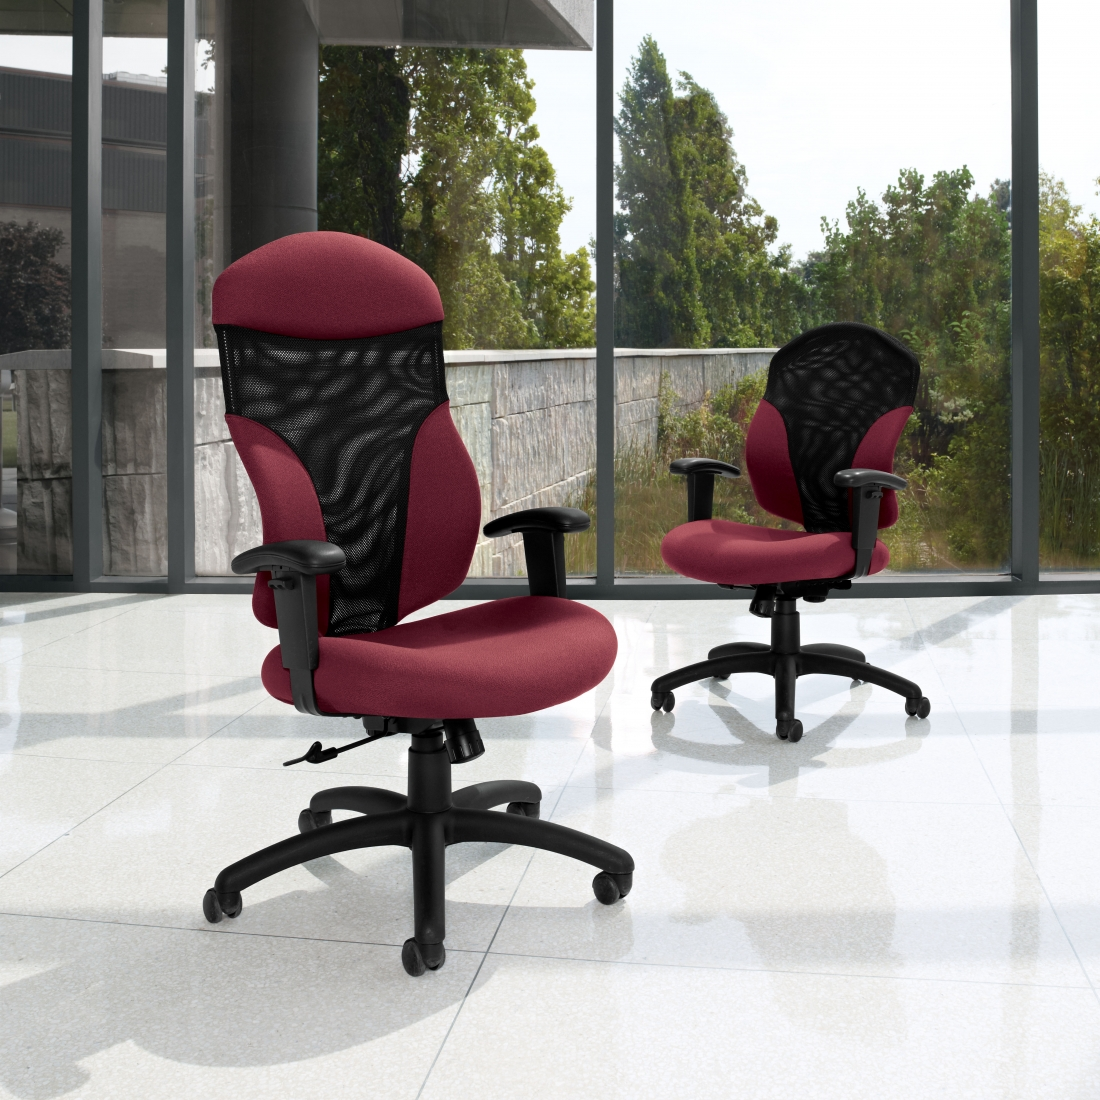 Office Chair Deals The Office Furniture Blog At Officeanything How To